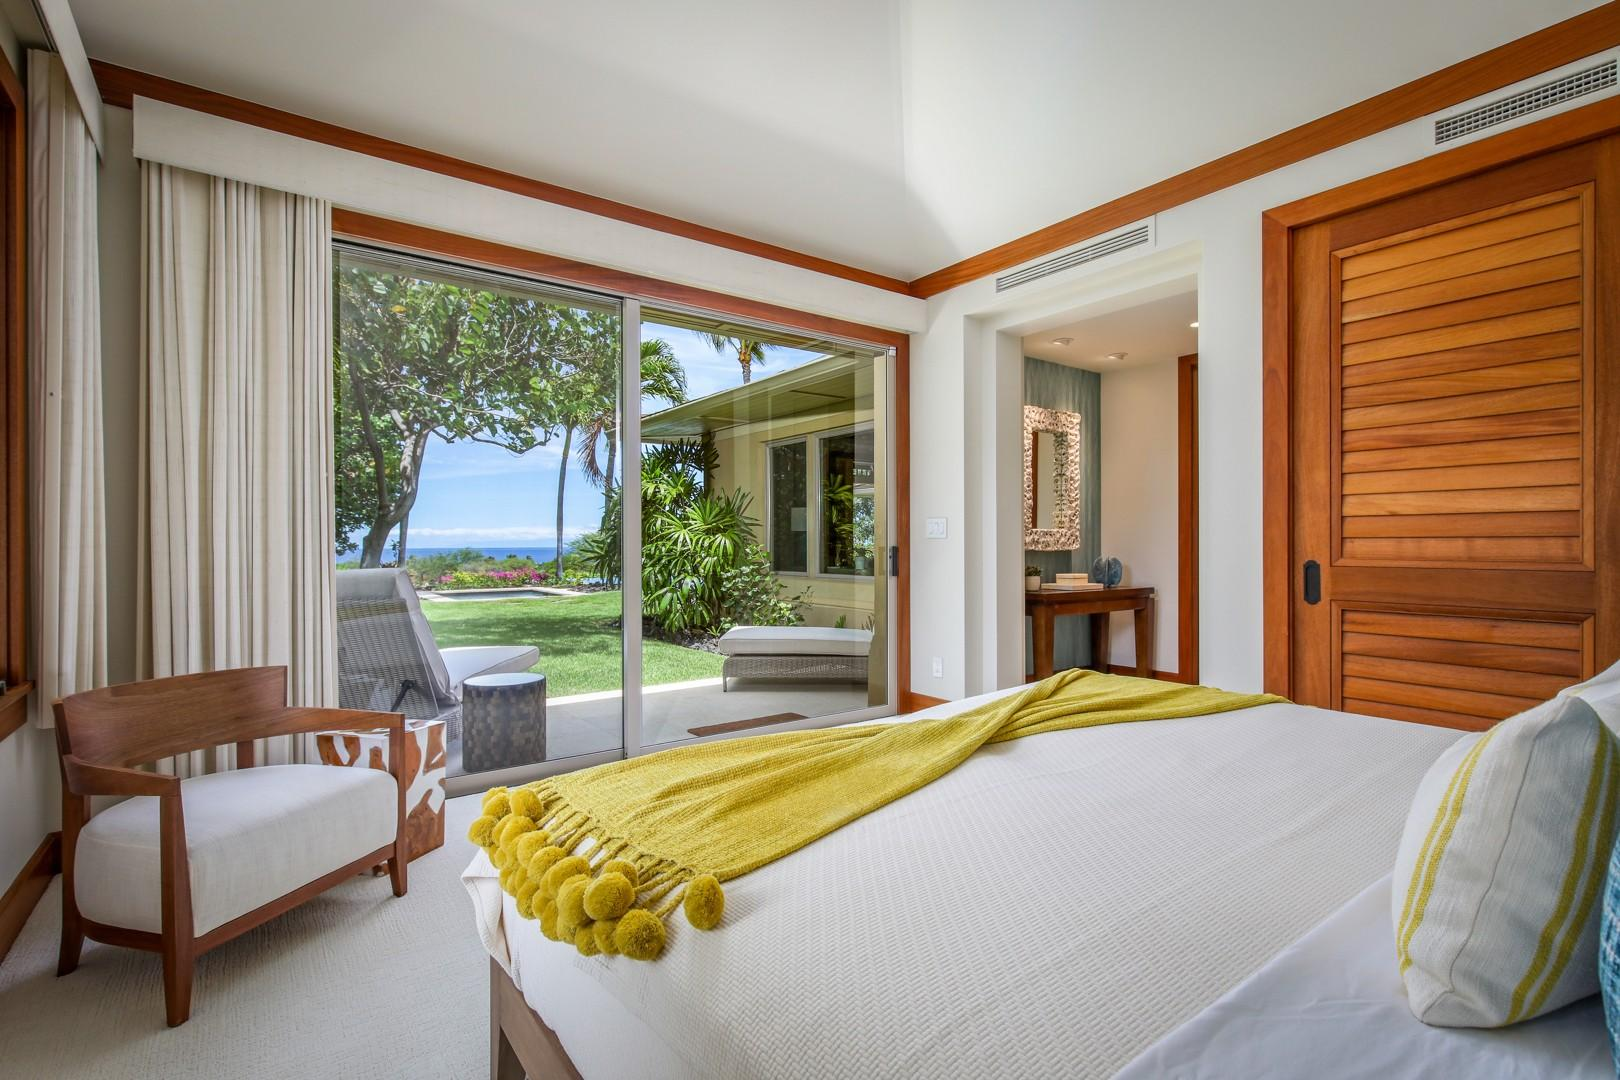 Reverse view of Guest Room 2 showcasing ocean views and private lanai with lounge seating.